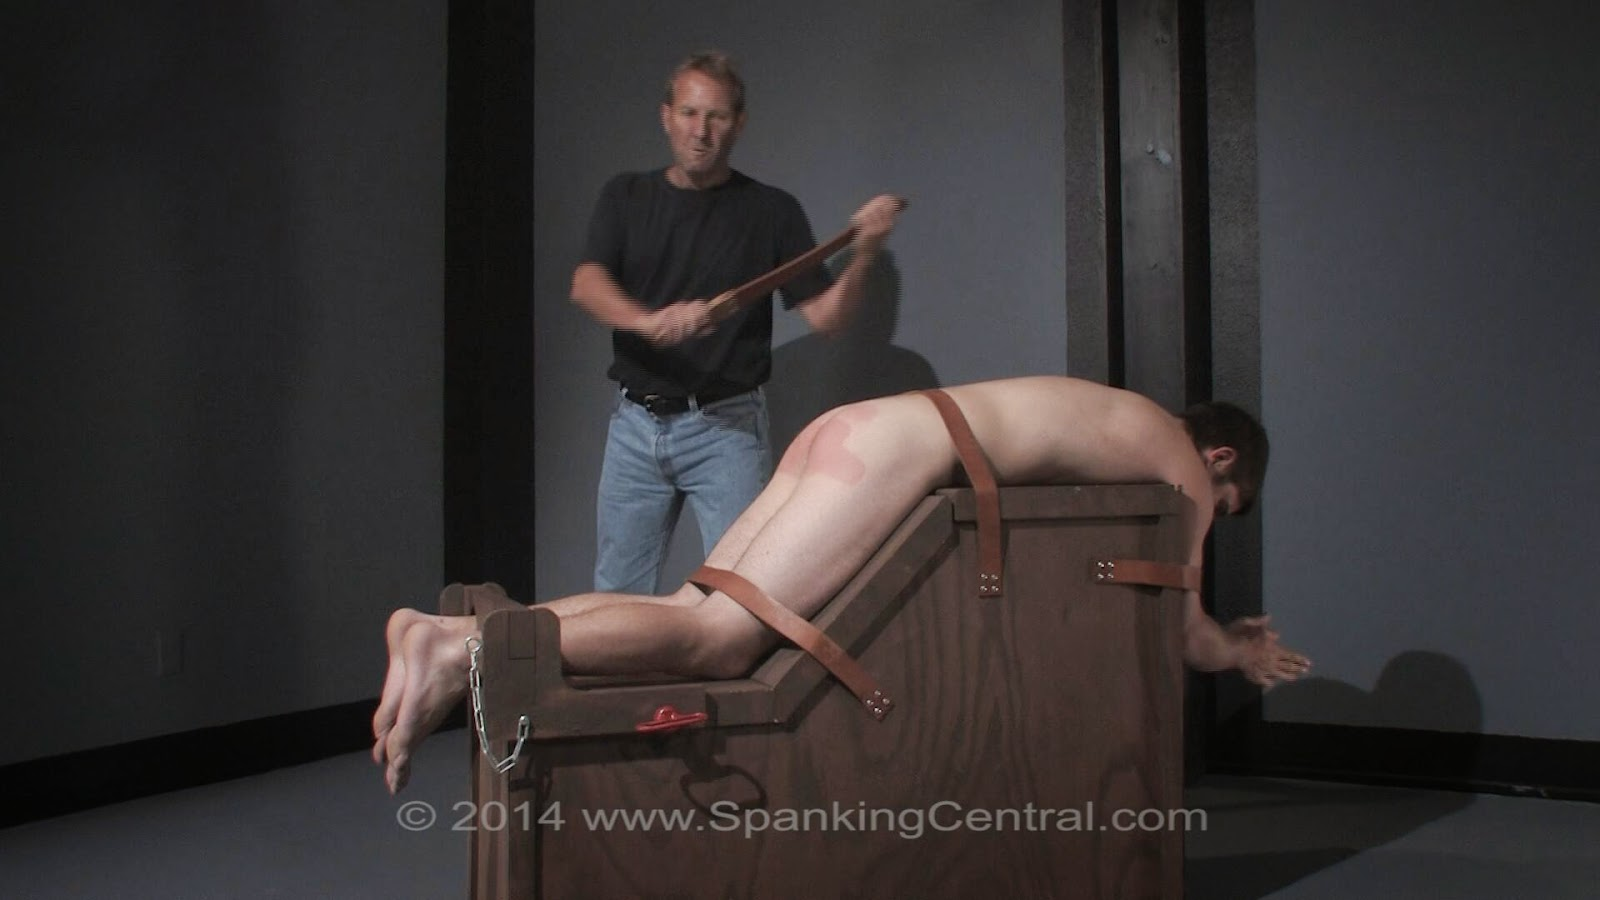 Spanking Central Chris Consequences Continue